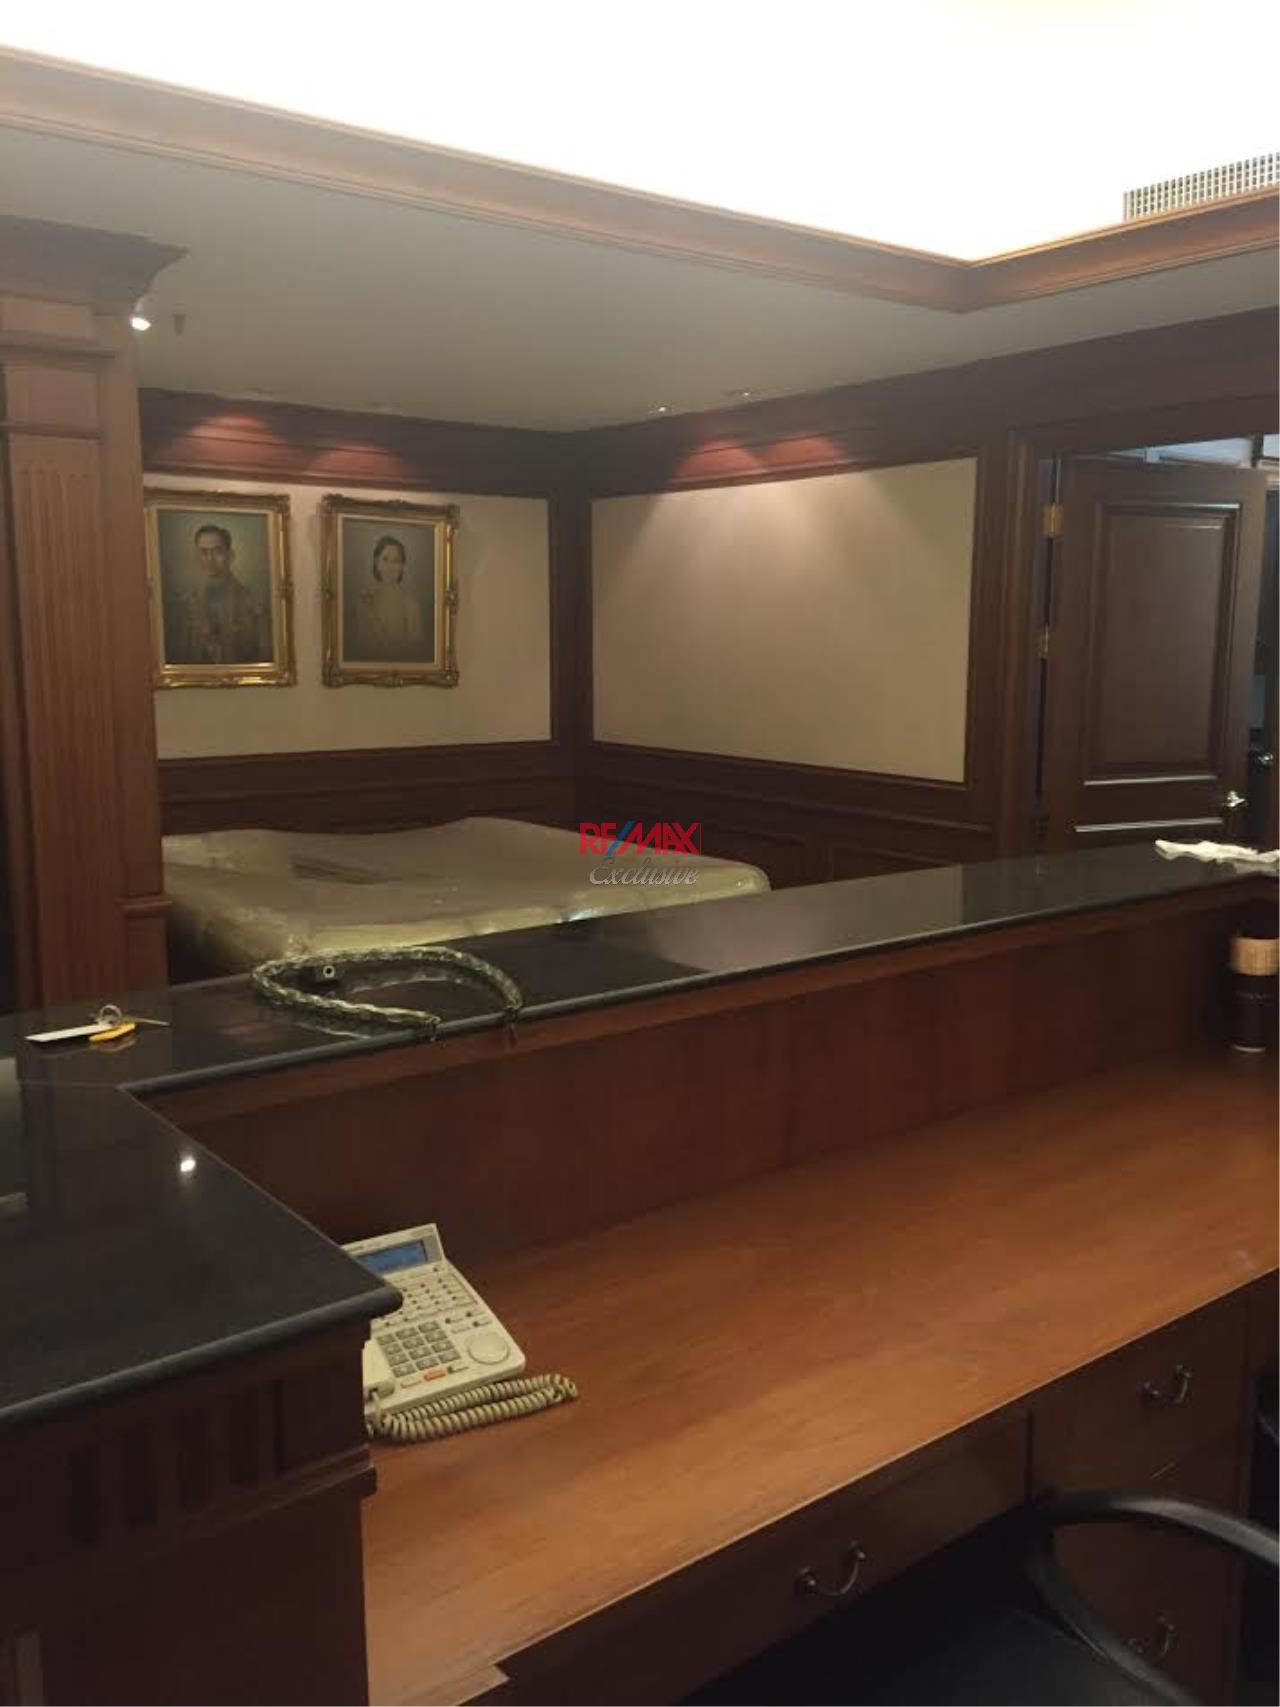 RE/MAX Exclusive Agency's PS Tower Office Space for Rent in Downtown of Sukhumvit 225,000/ month   7